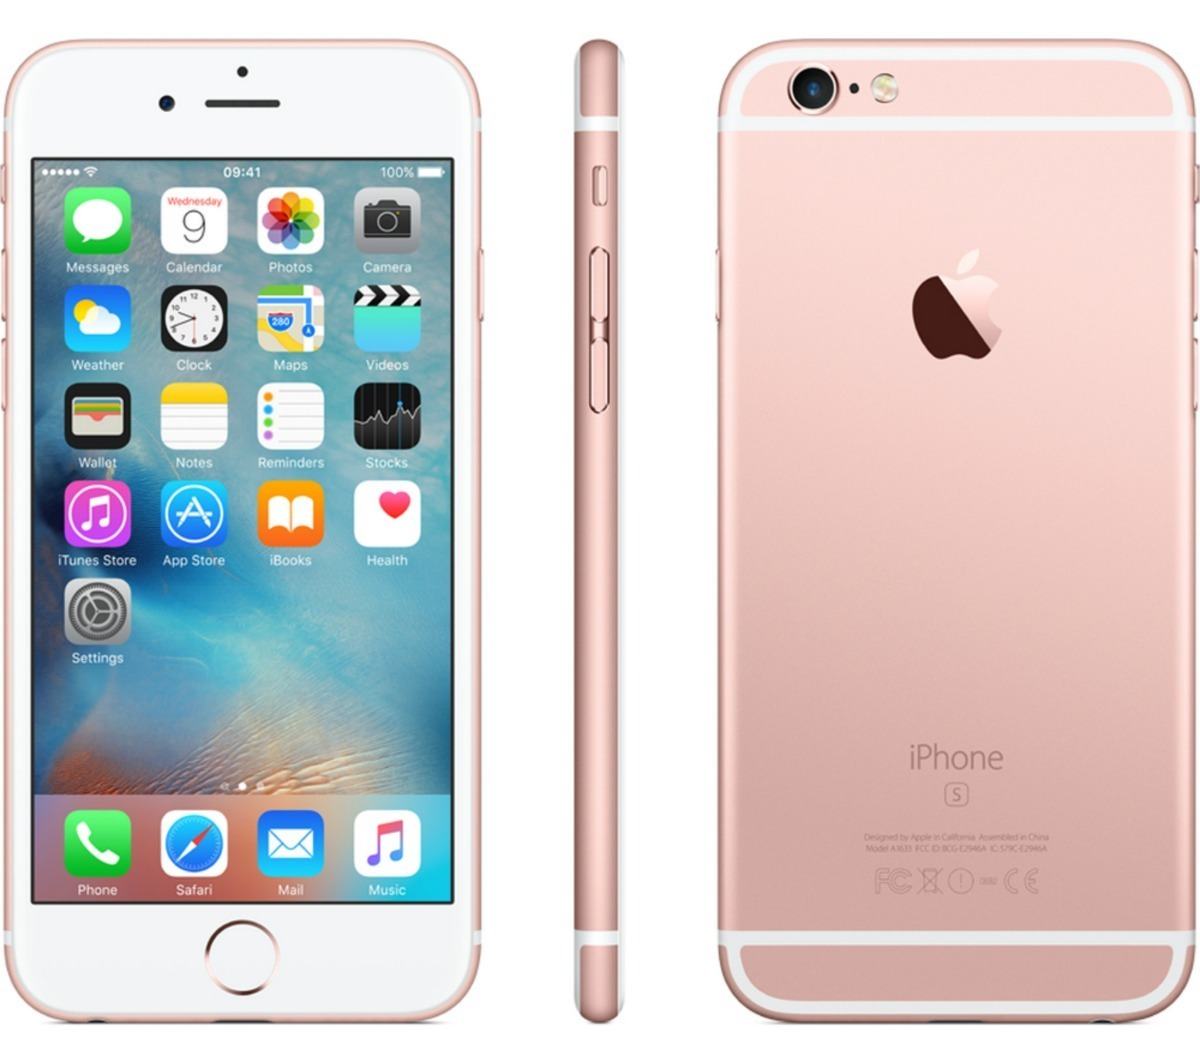 e5fd1fc6c36 celular apple iphone se 32gb gold rosa libre modelo shfy mp3. Cargando zoom.